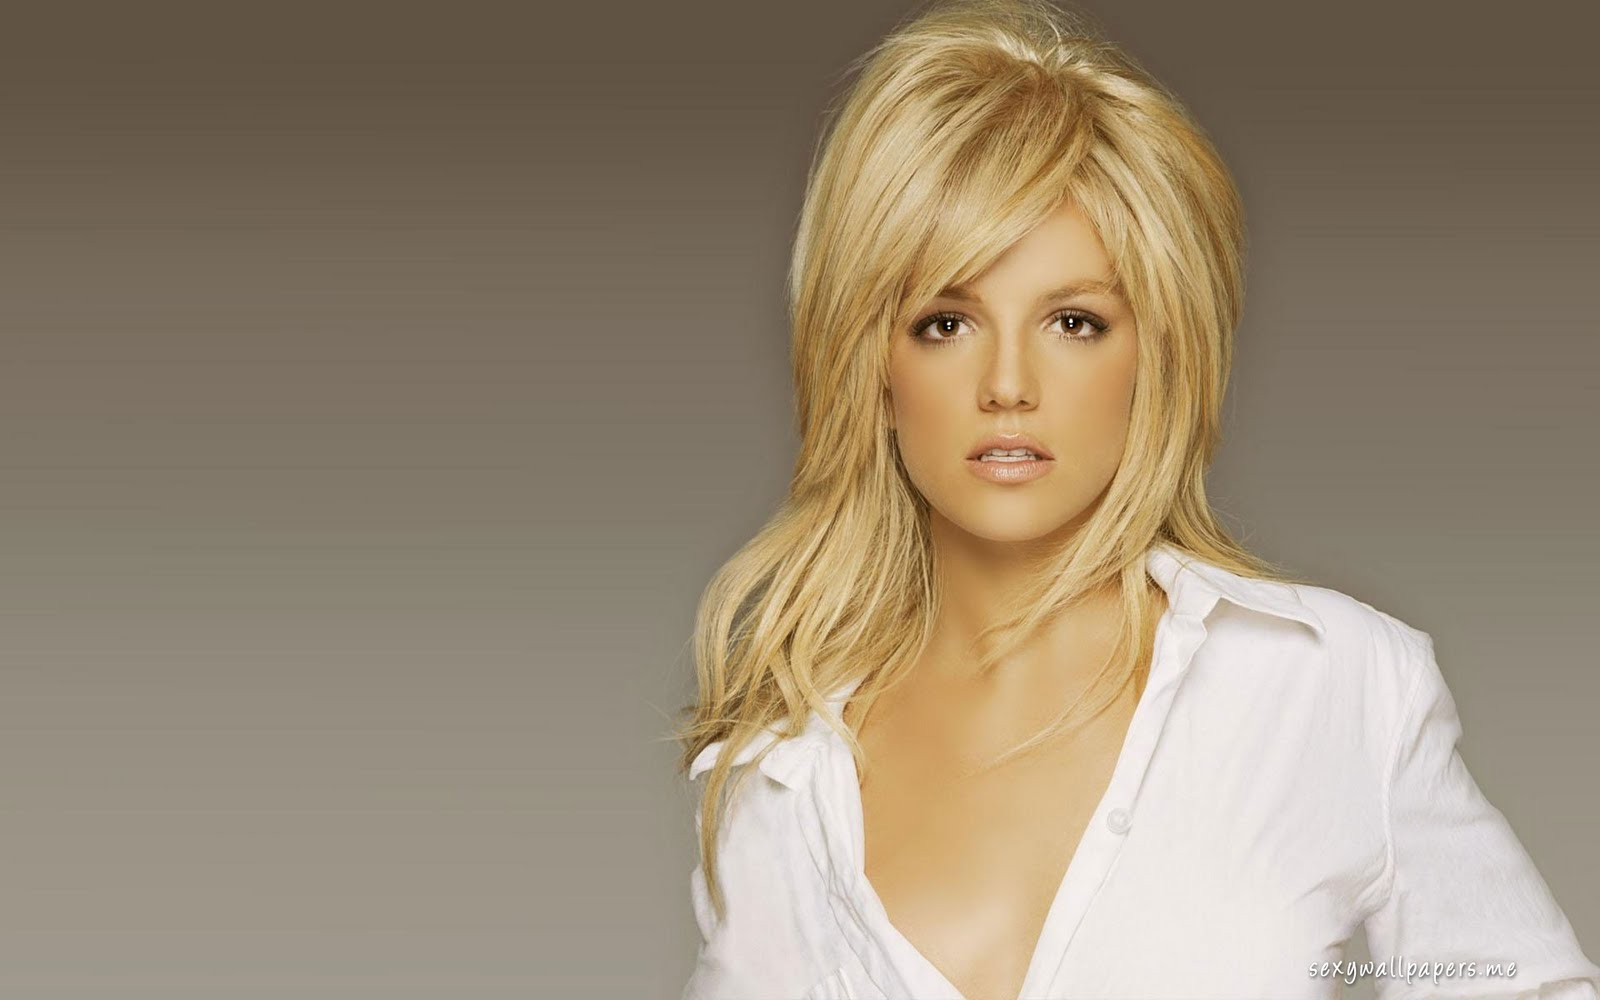 Britney Spears Hair Styles: QQ Wallpapers: Britney Spears HQ Wallpaper Set 2